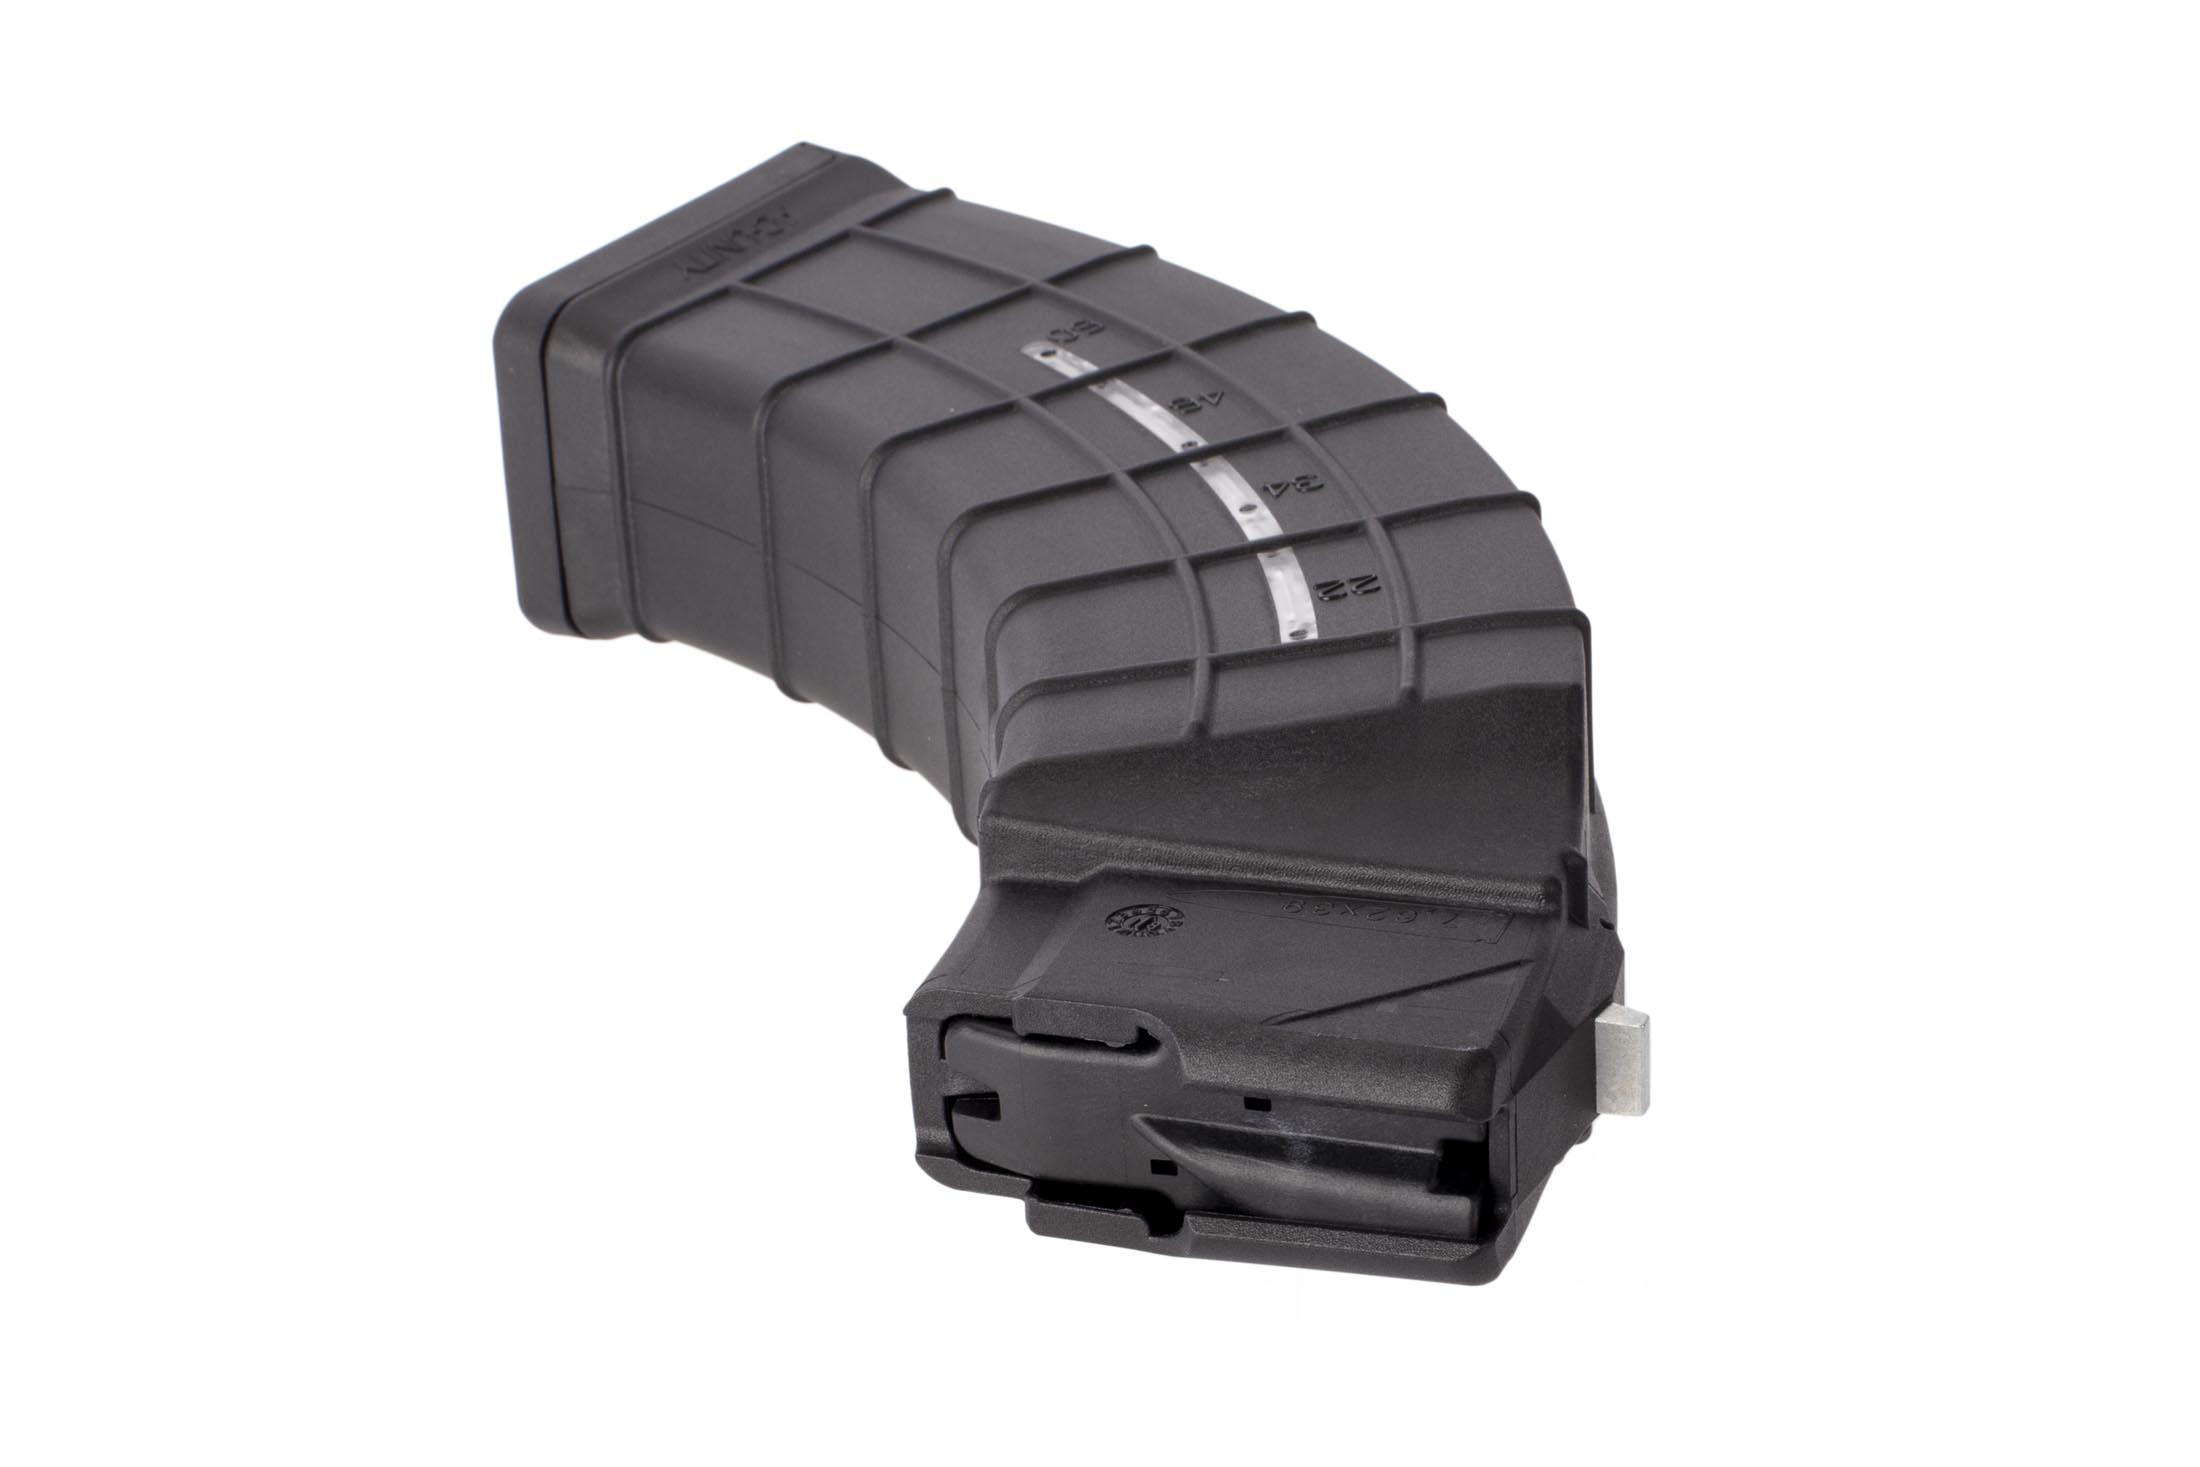 AC Unity quad-stack 60-round AK-47 magazine features reinforced locking tabs for secure fit in your rifle